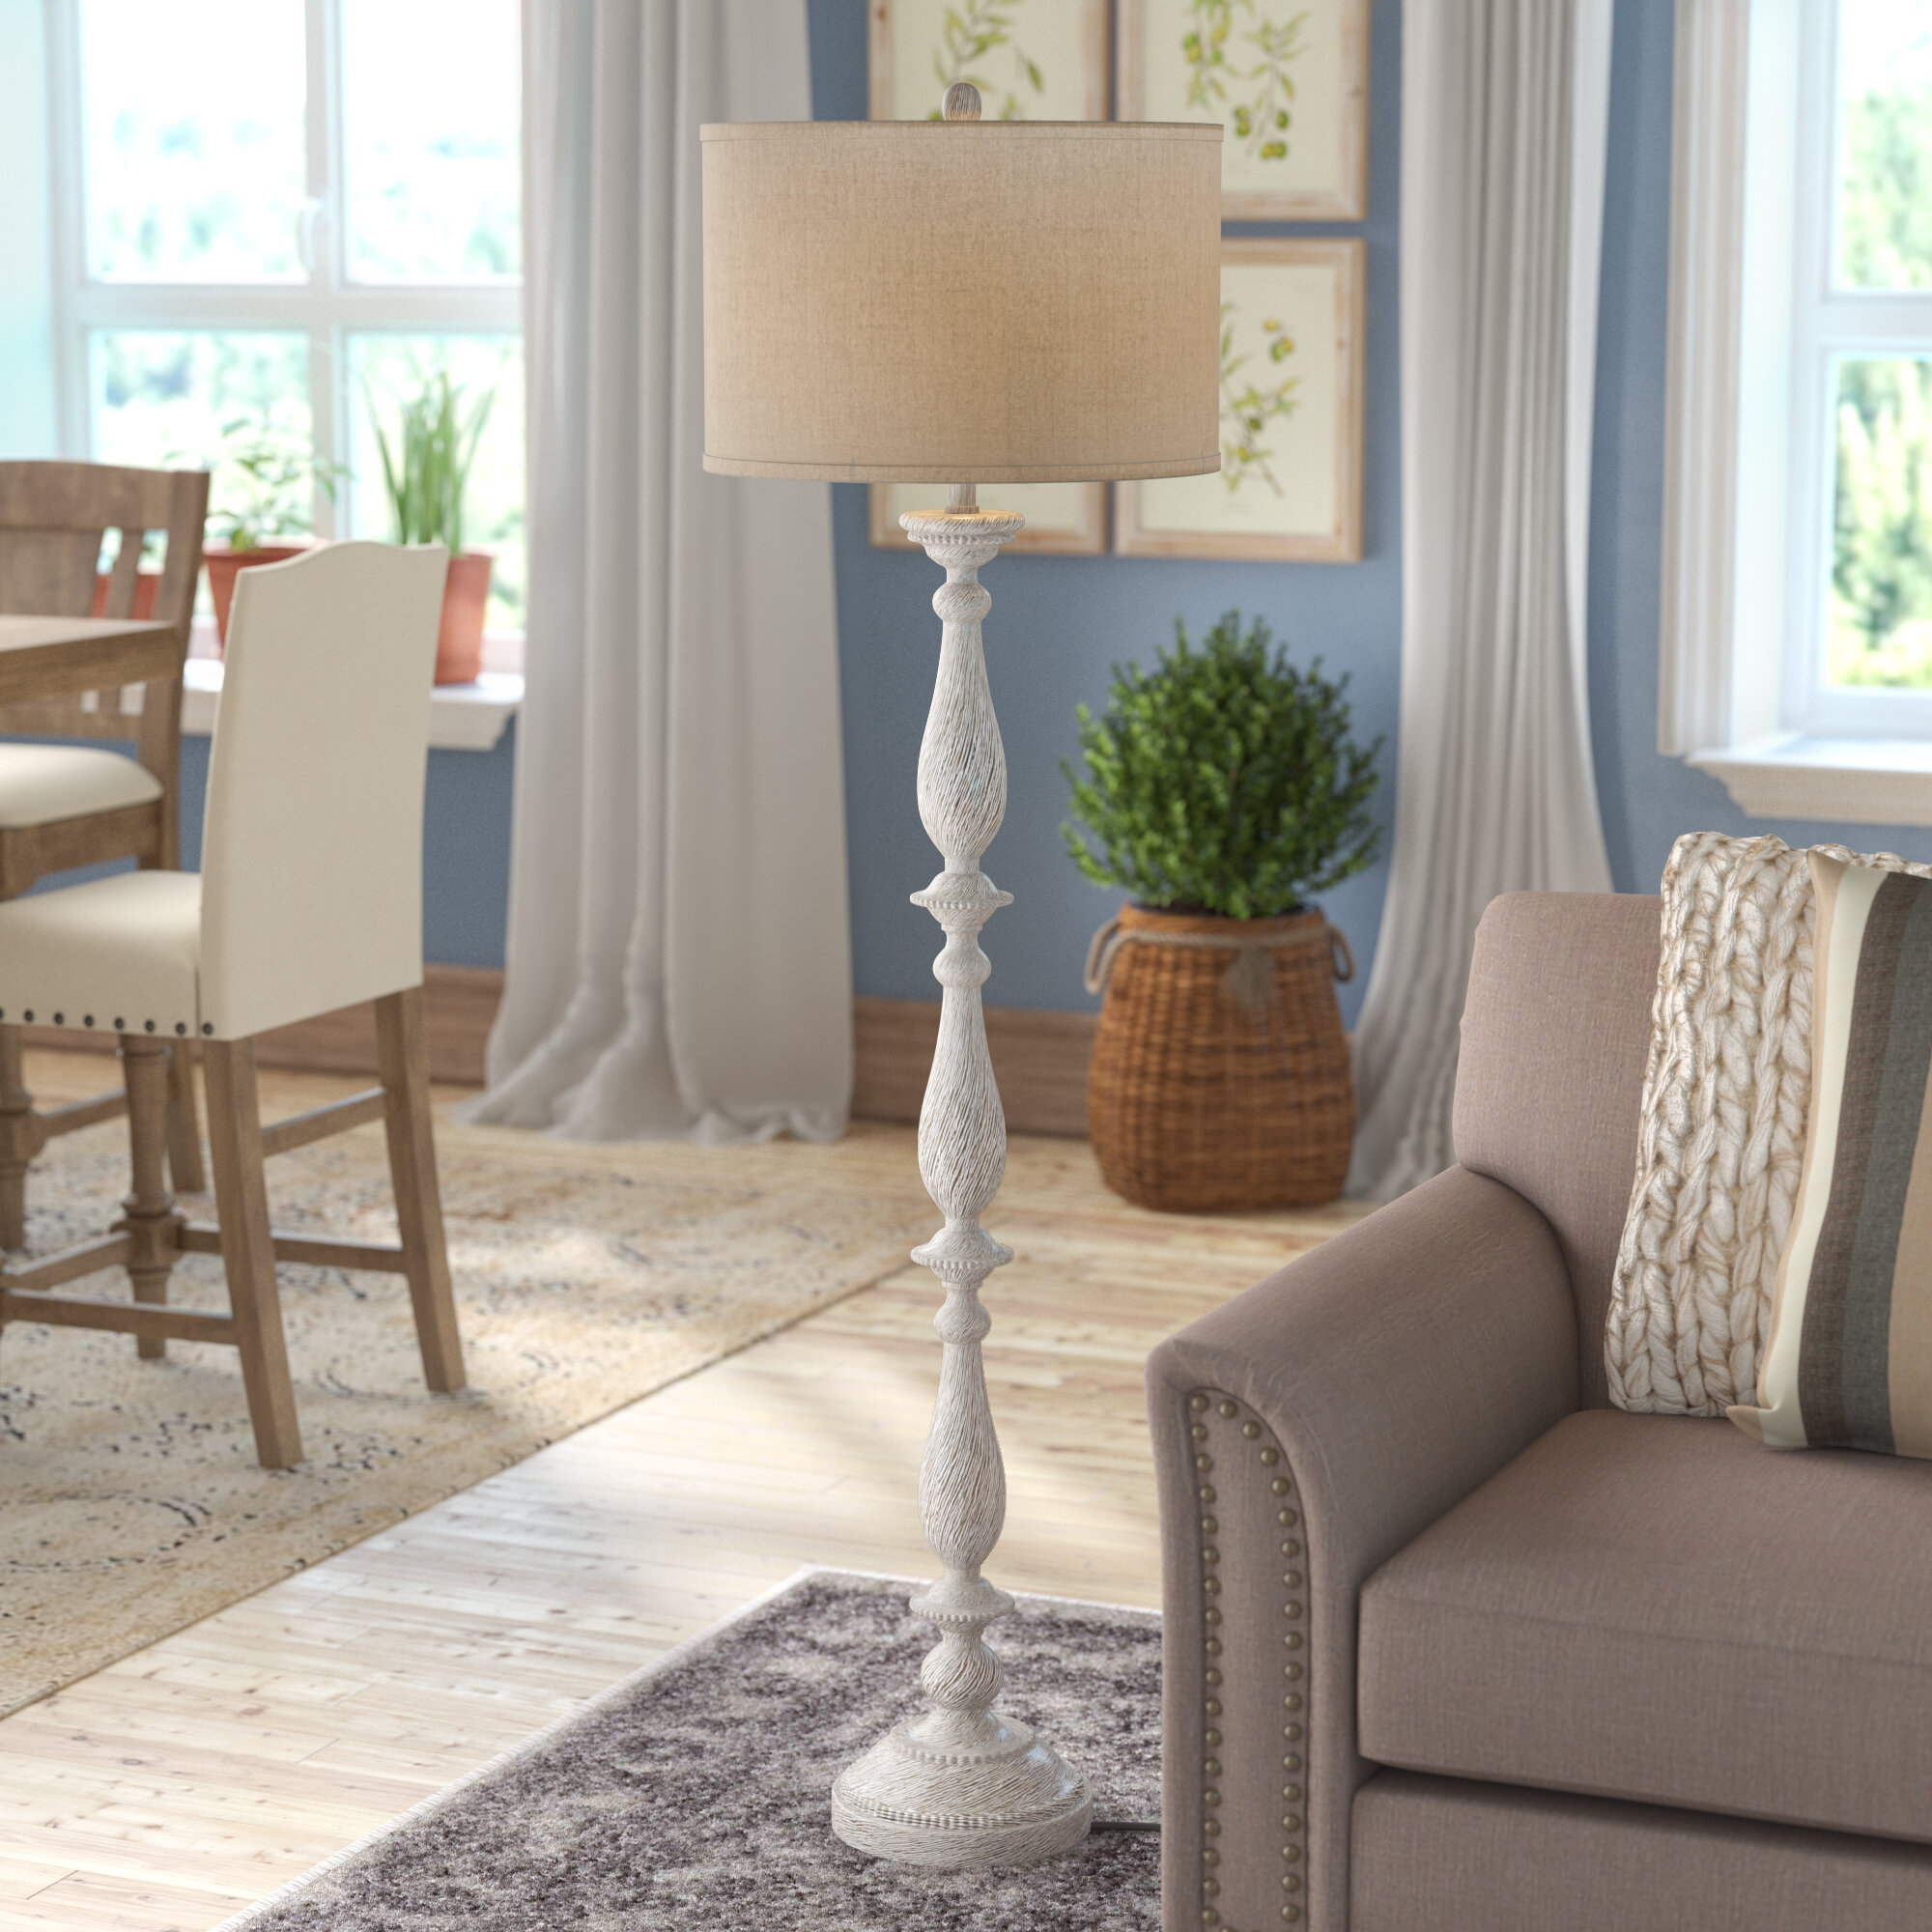 Ophelia Co Whipkey 62 Traditional Floor Lamp Reviews Wayfair